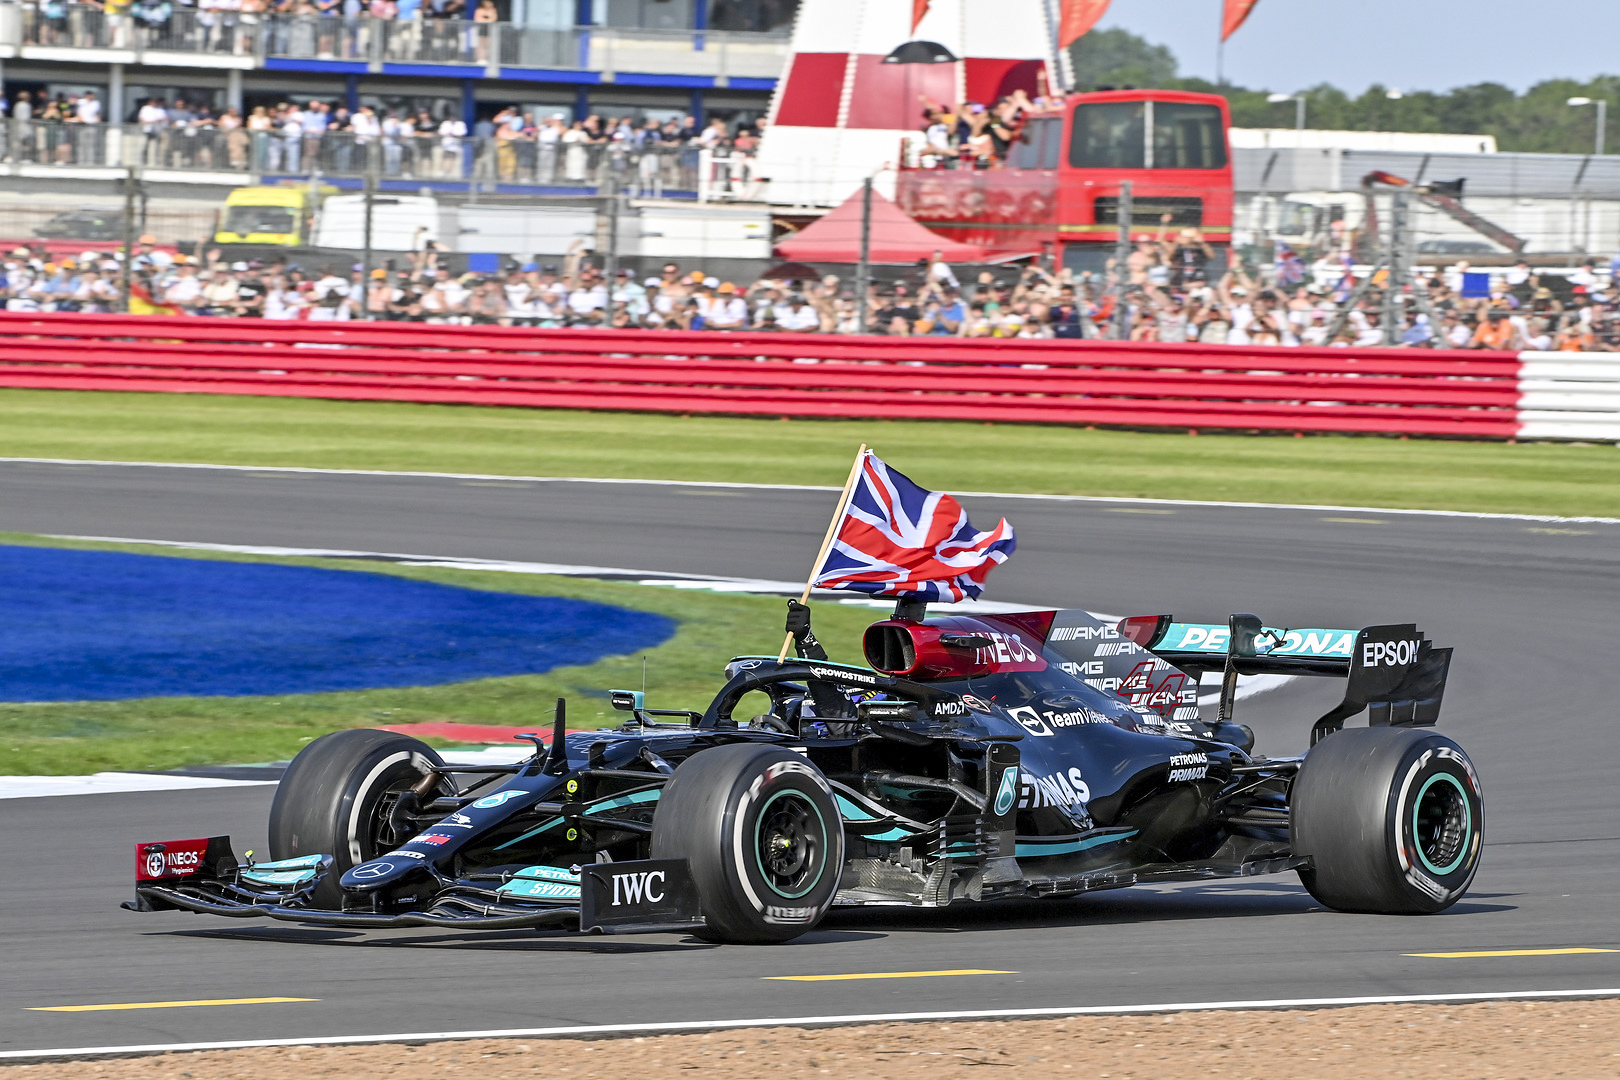 Lewis claims a hard-fought victory for the Mercedes-AMG Petronas F1 Team at the 2021 British Grand Prix, with Valtteri securing an impressive podium in P3